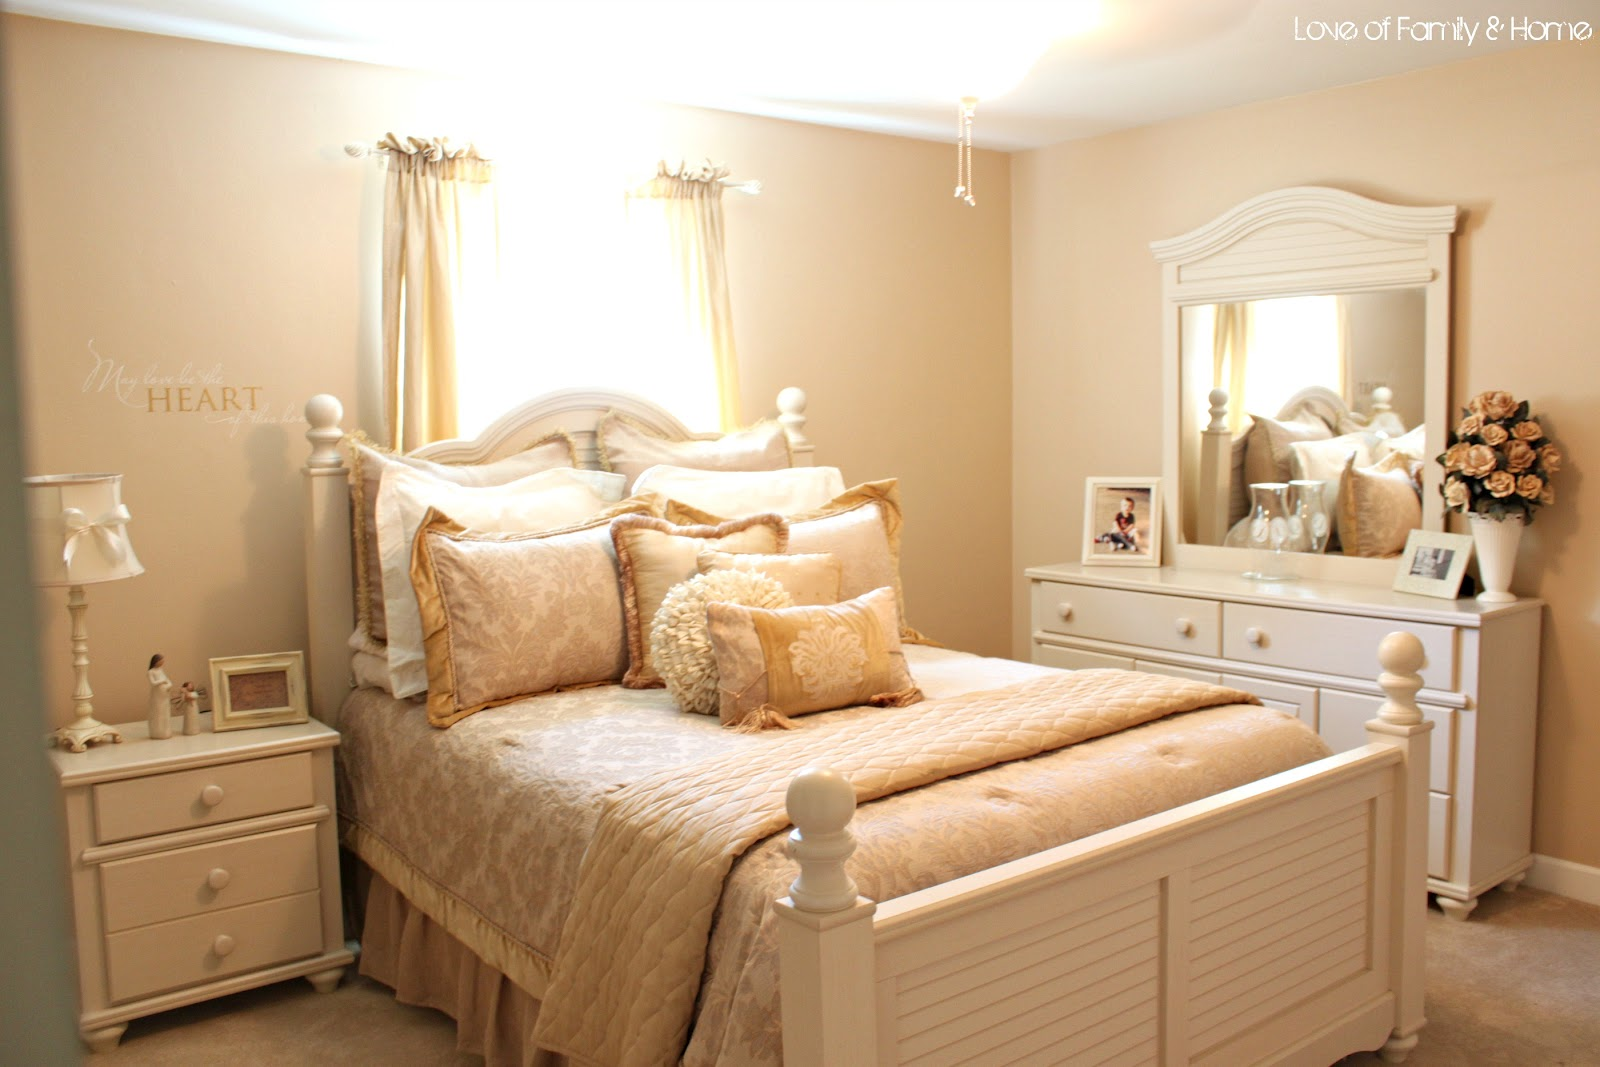 cottage style bedroom. 10 Cottage Style Bedrooms Makeover Inspiration  Love of Family